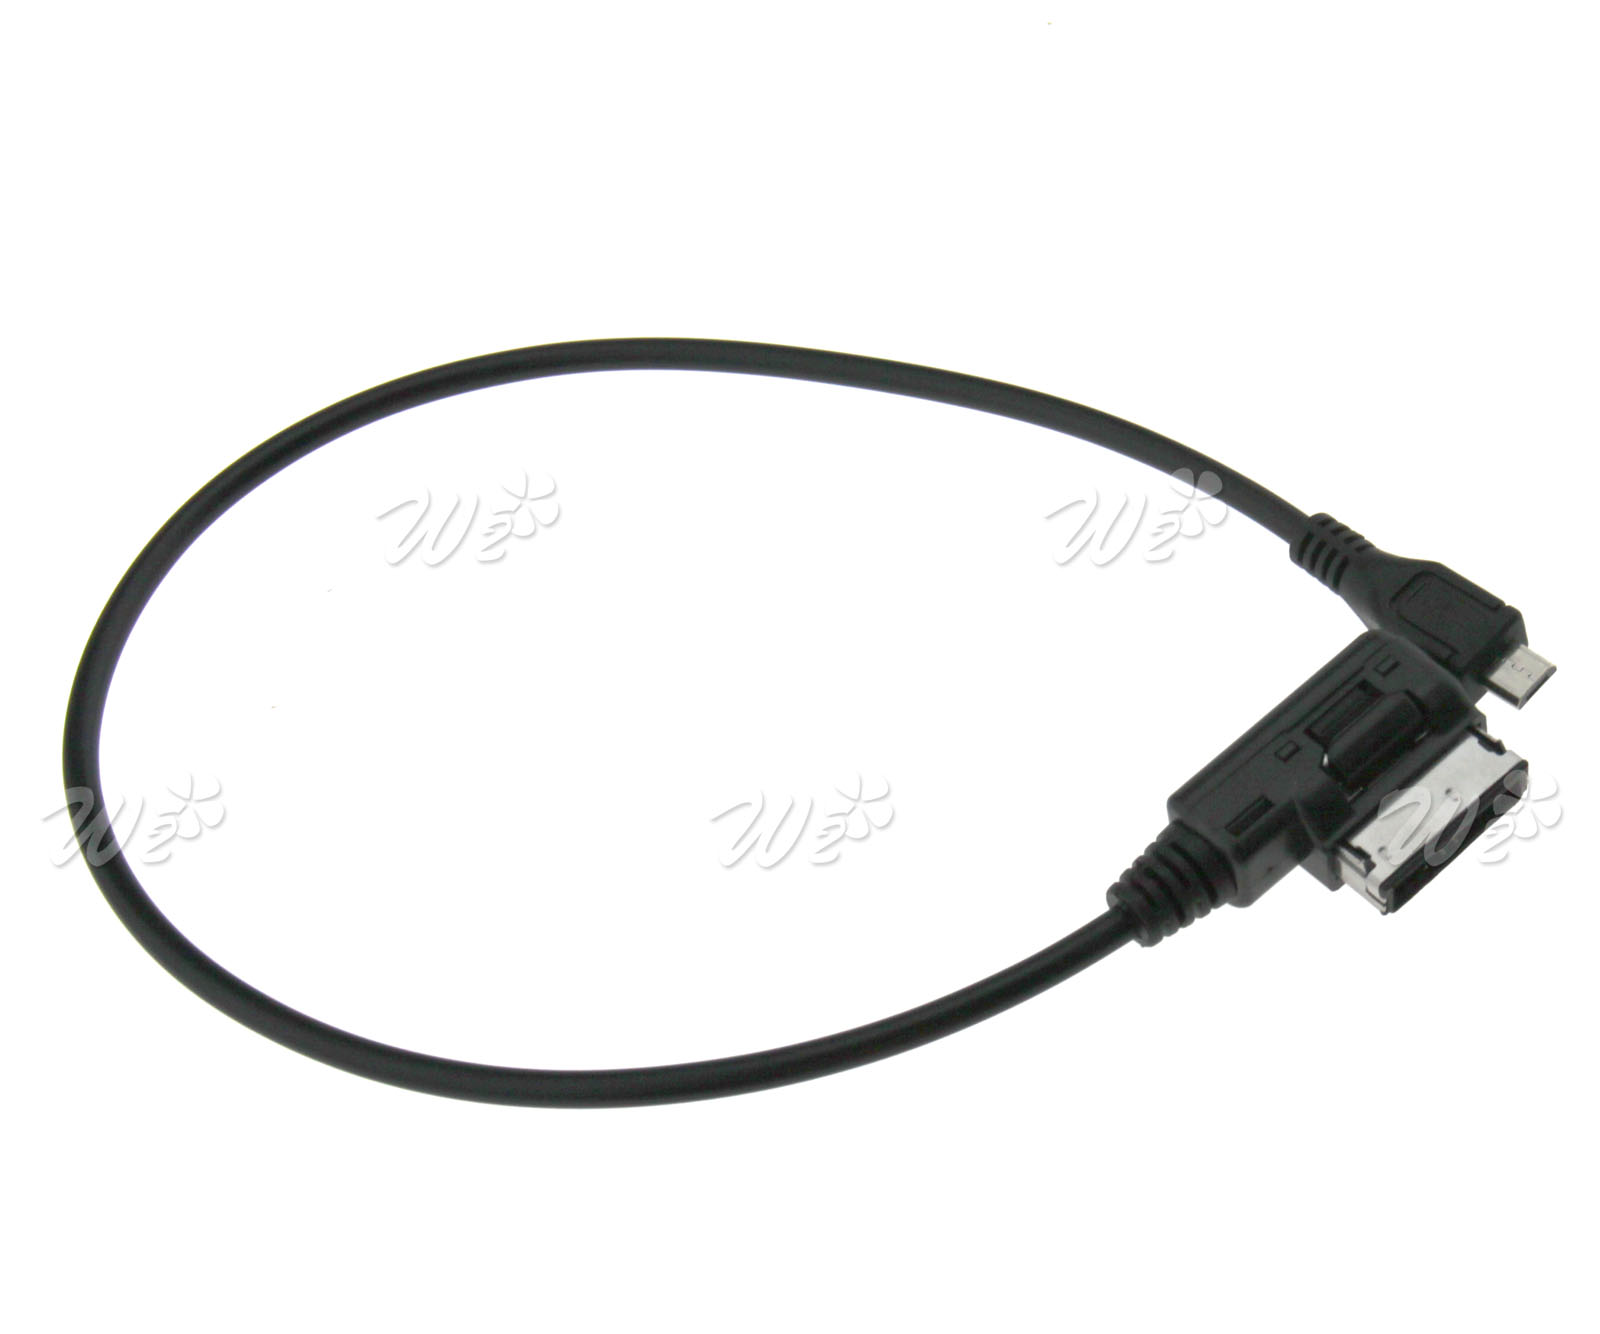 micro usb to audi interface ami mmi adapter cable for audi. Black Bedroom Furniture Sets. Home Design Ideas